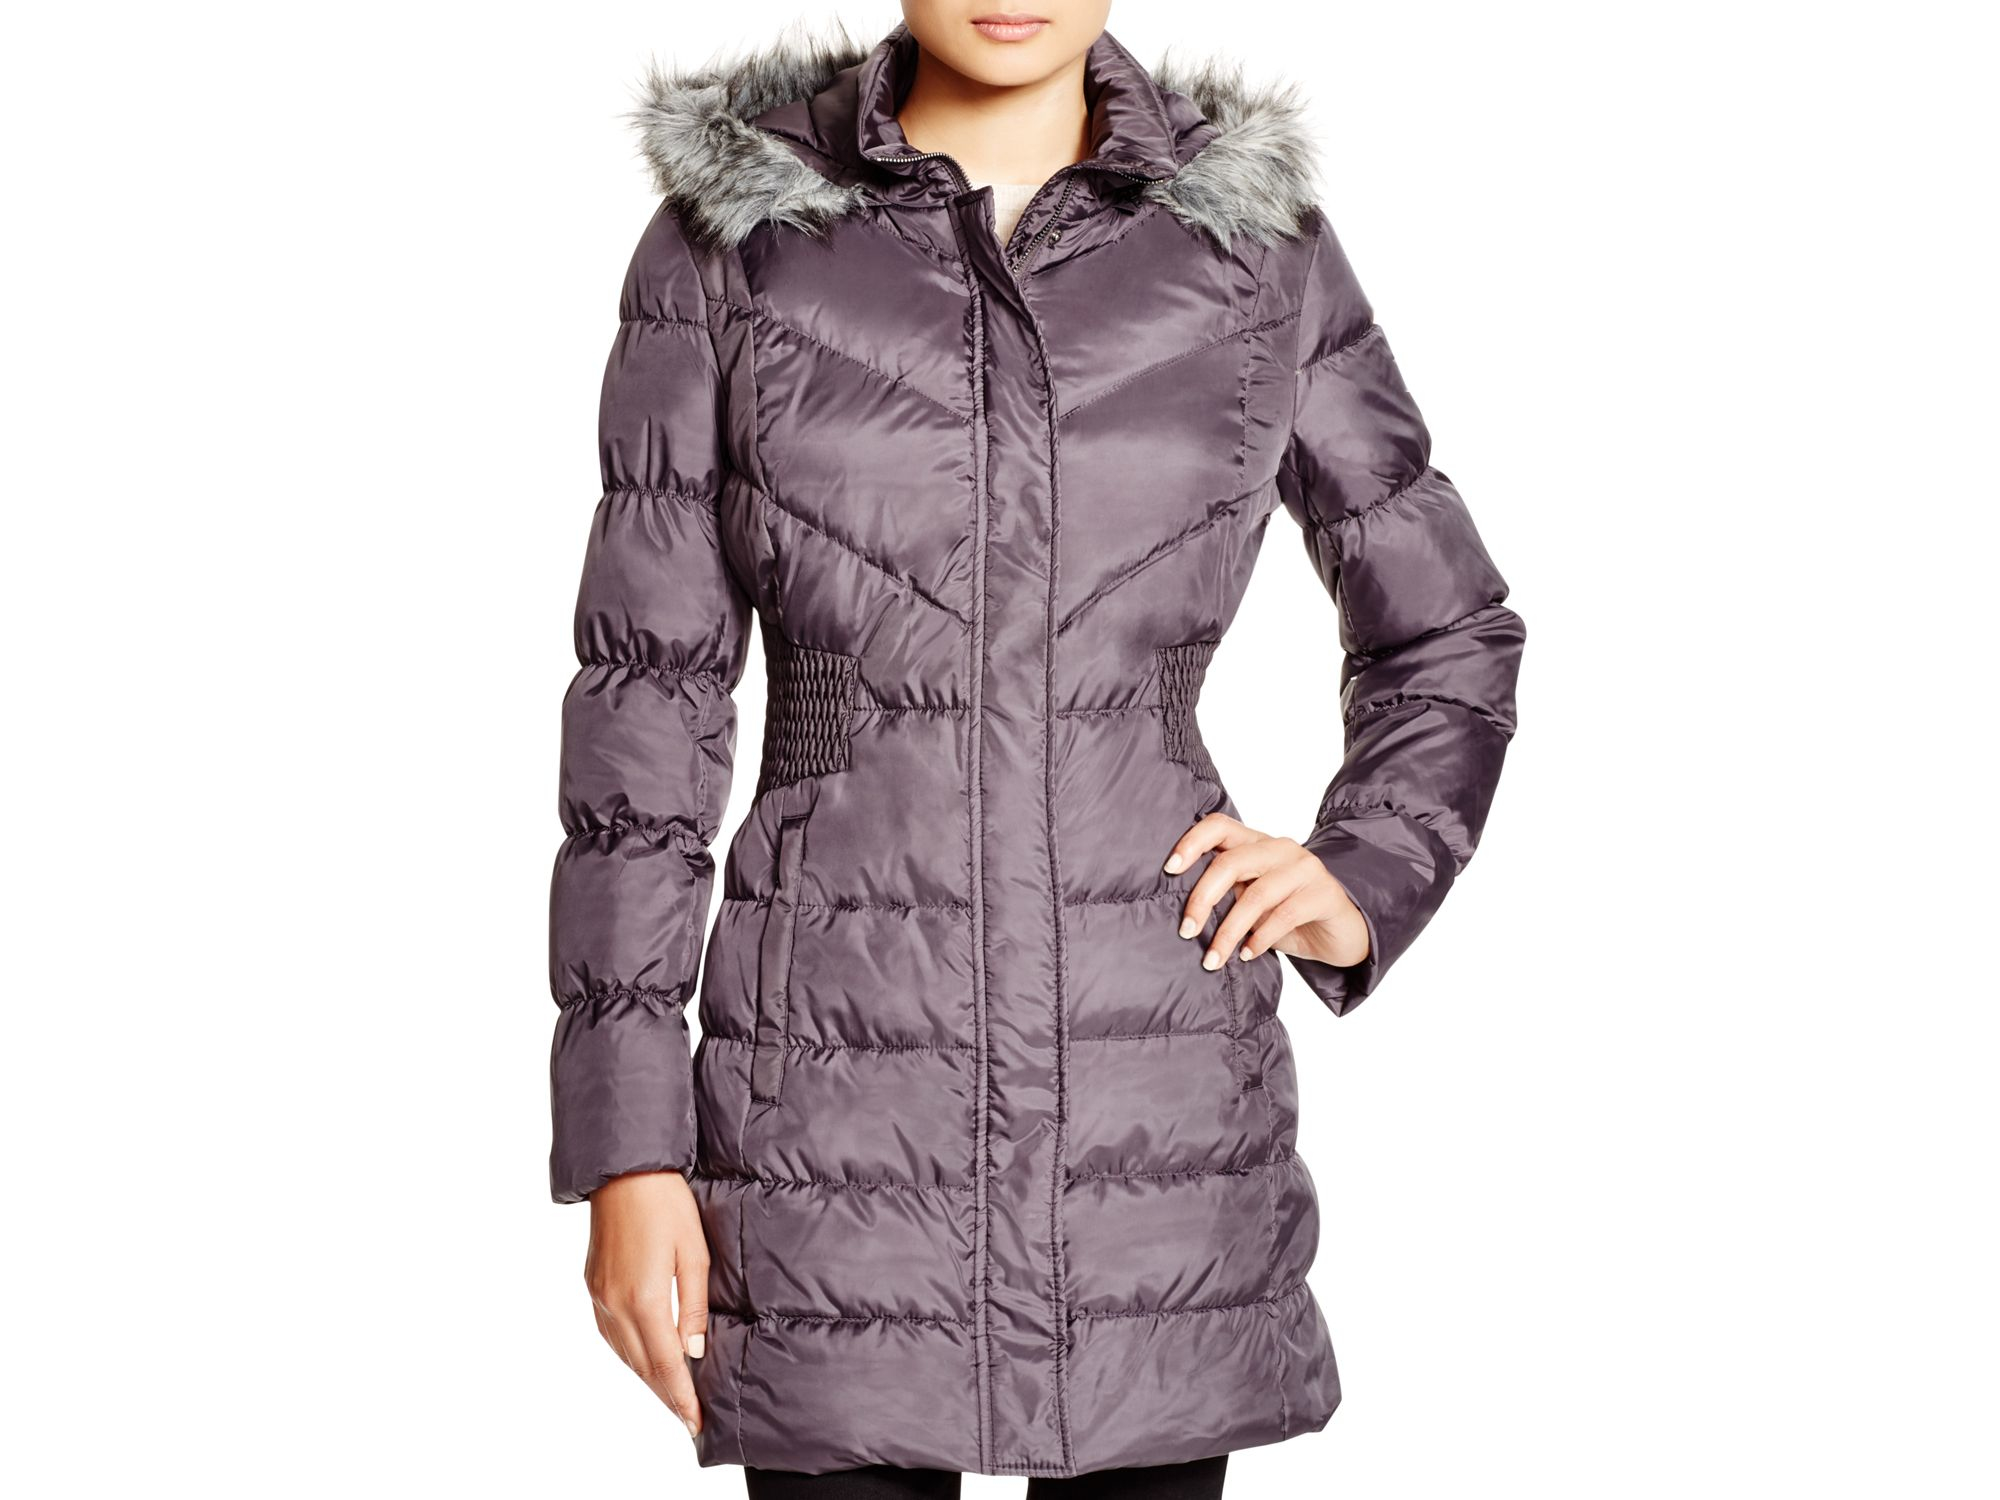 Via Spiga Faux Fur Trim Hooded Puffer Jacket In Steel